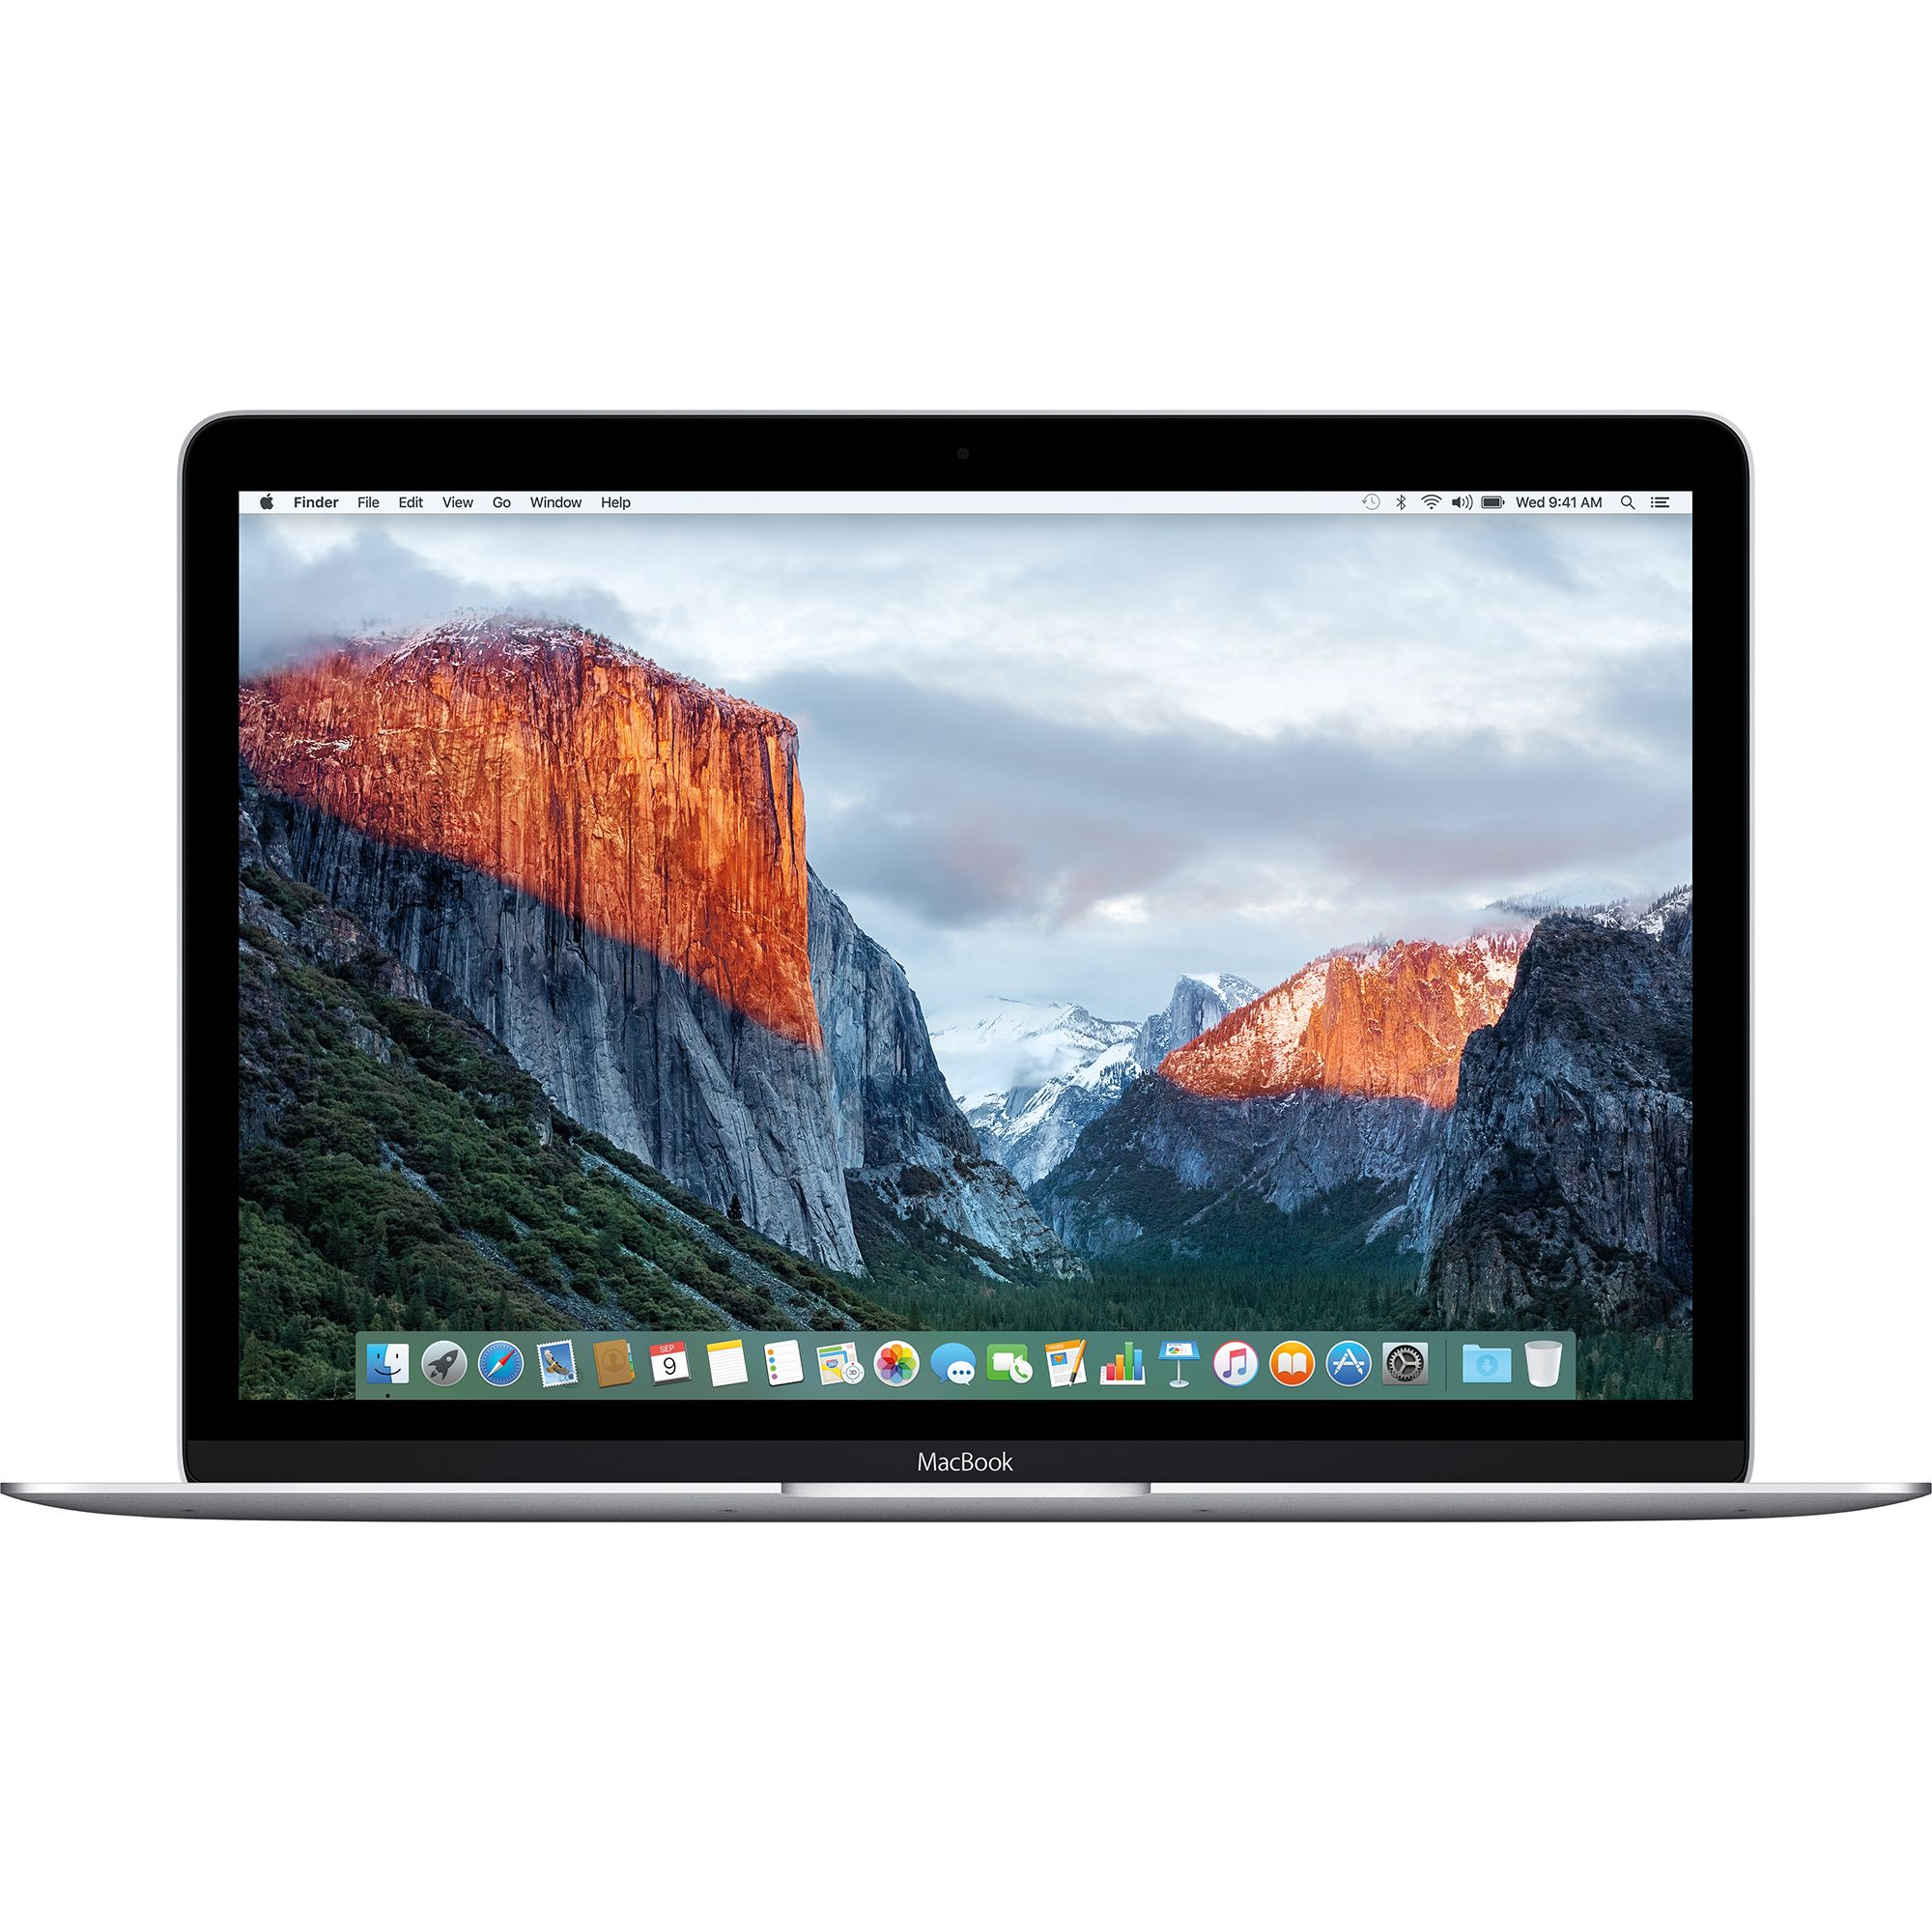 Notebook Apple MacBook Retina 12 Intel Core i5 1.3GHz RAM 8GB SSD 512GB Tastatura INT Silver